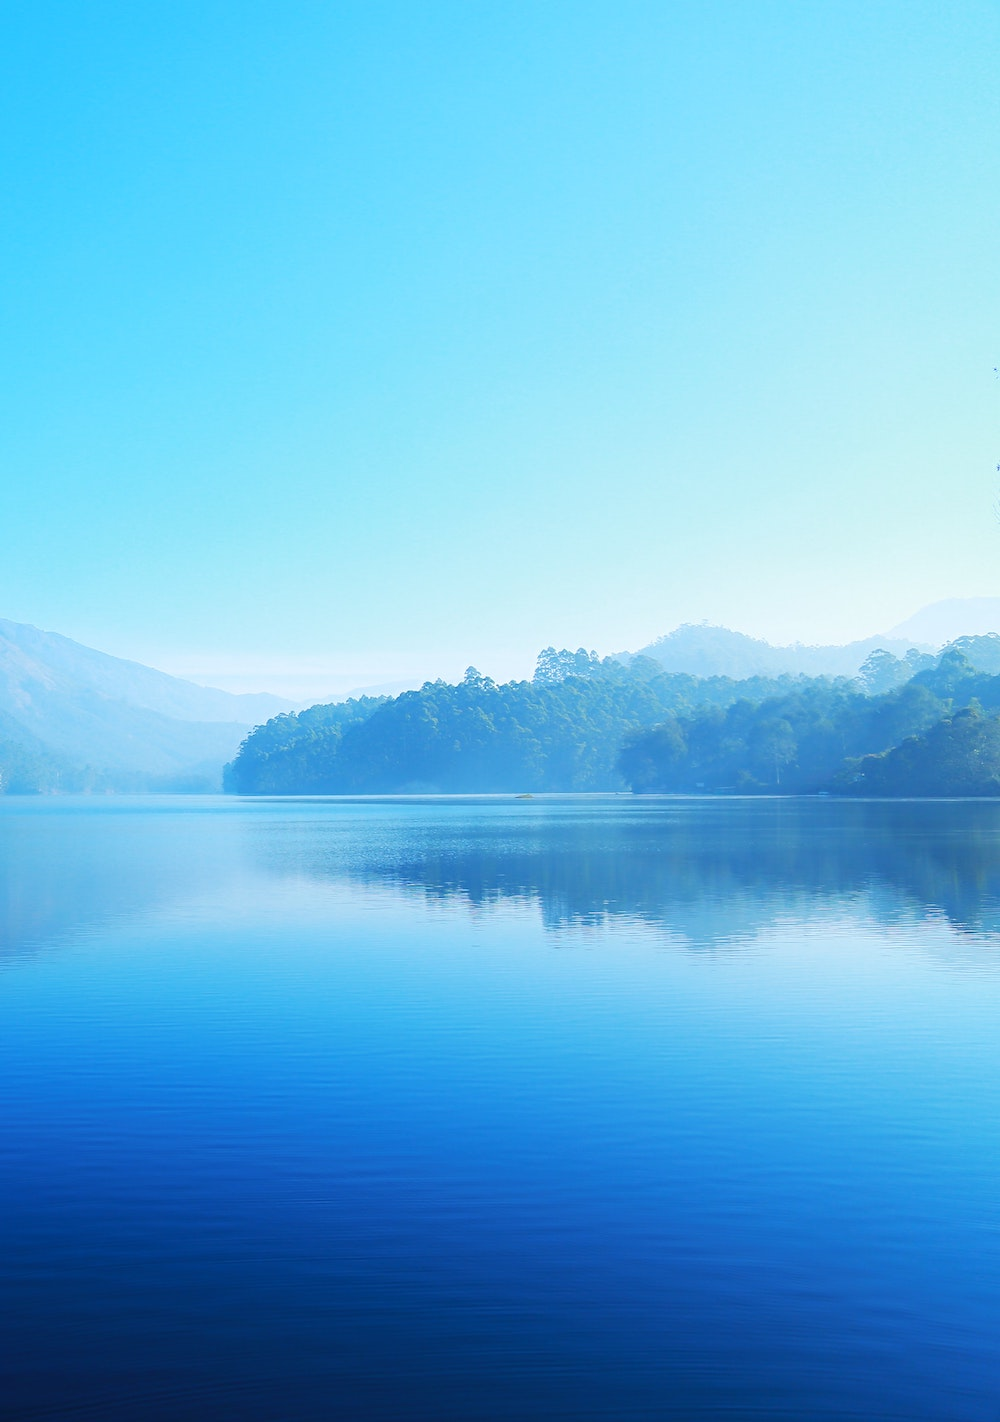 blue-iphone-wallpaper-lake-40465.jpg